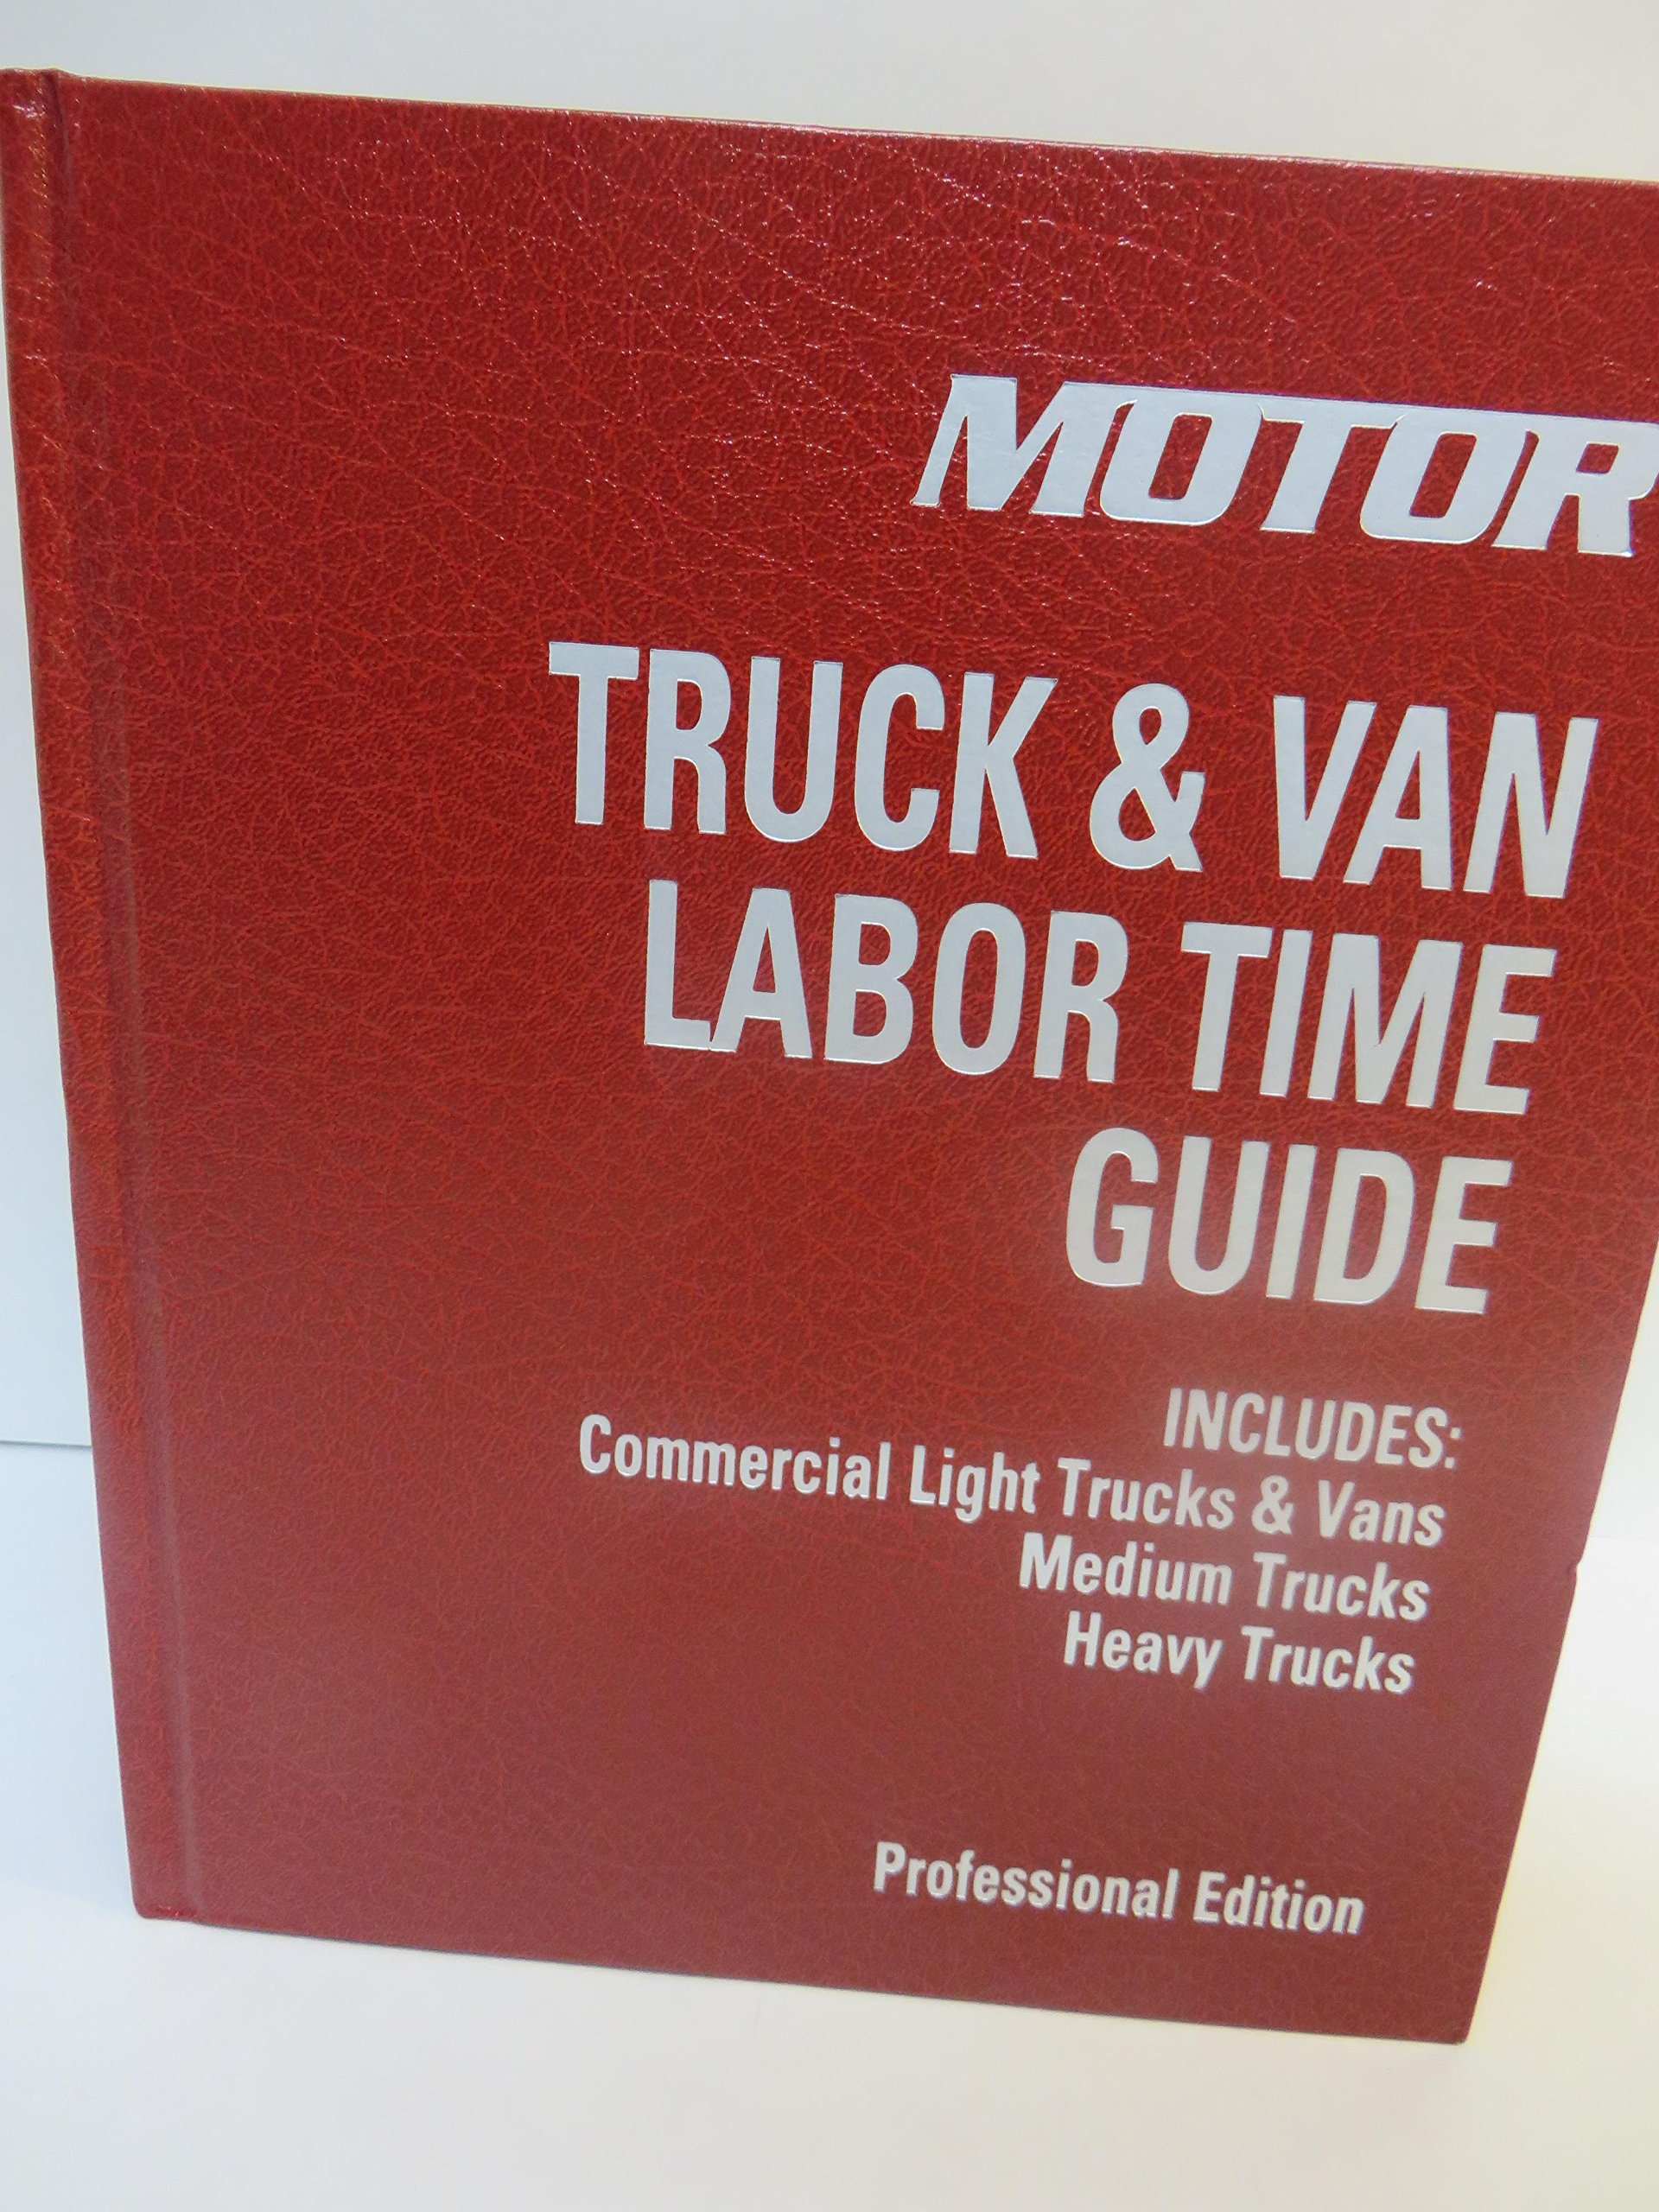 Motor Truck & Van Labor Time Guide 12th Edition First Printing: Motor:  9781582513935: Amazon.com: Books